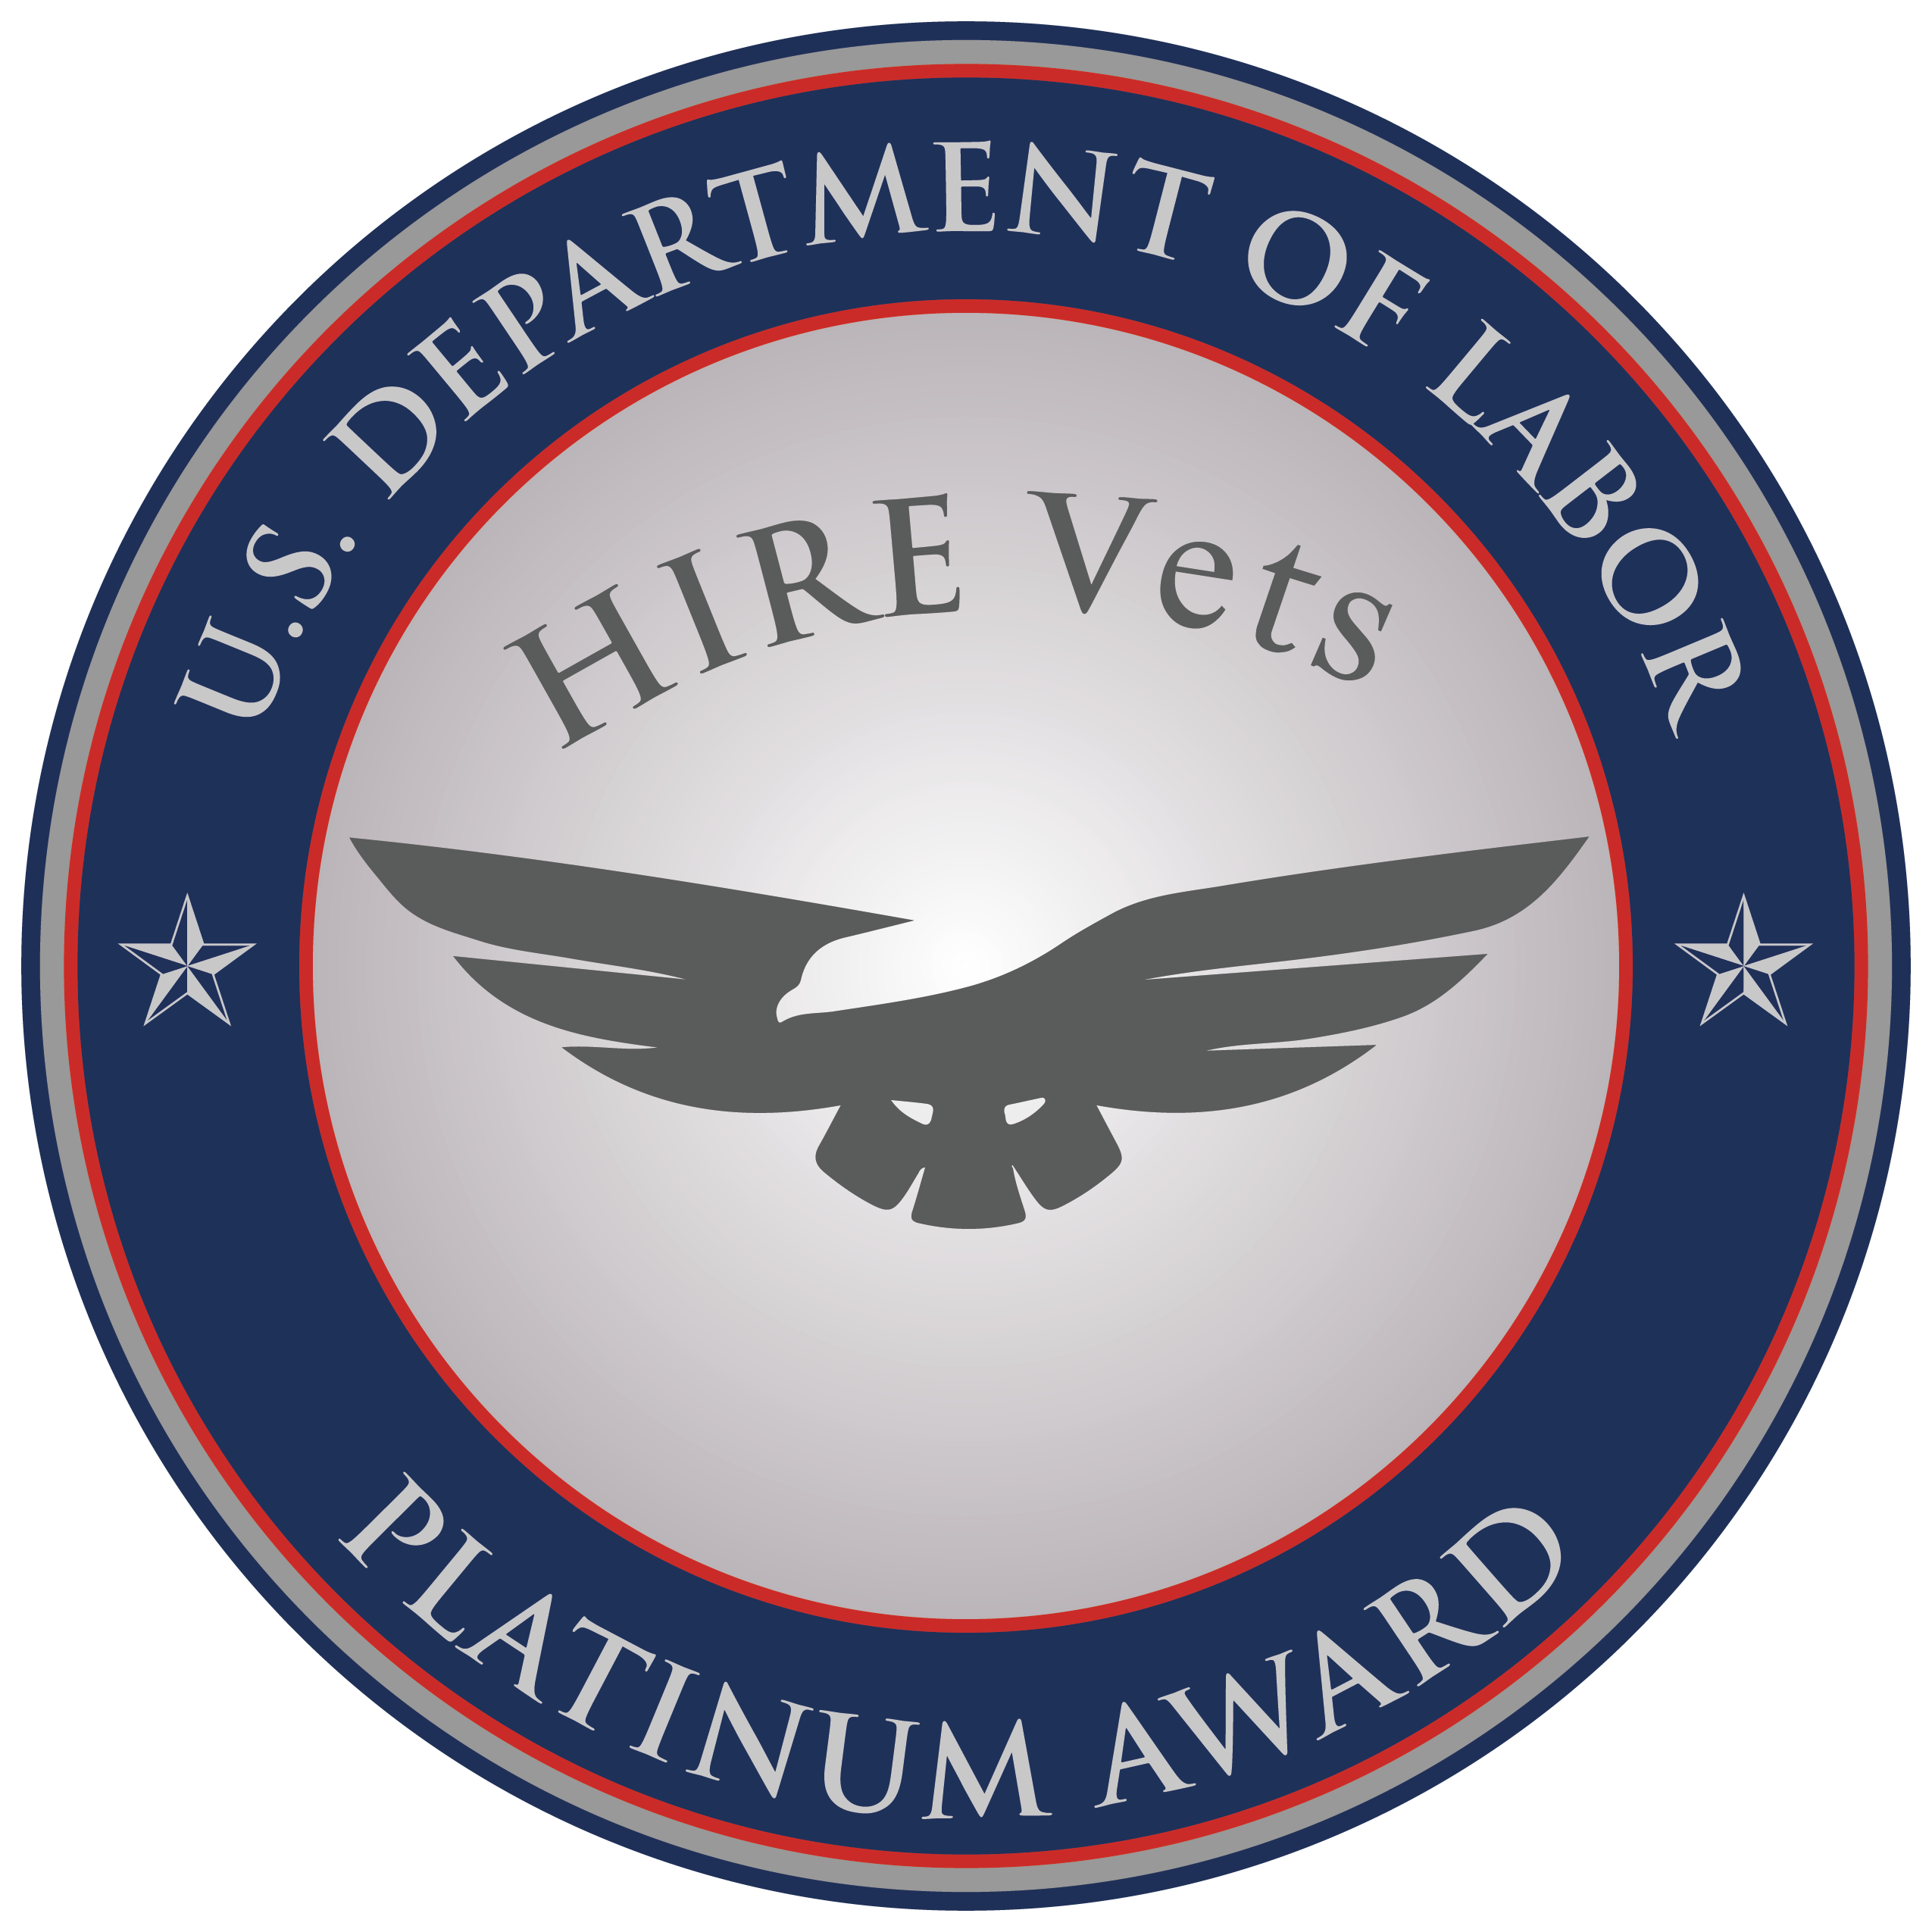 Dept. of Labor HIRE Vets Platinum Medallion Award Seal